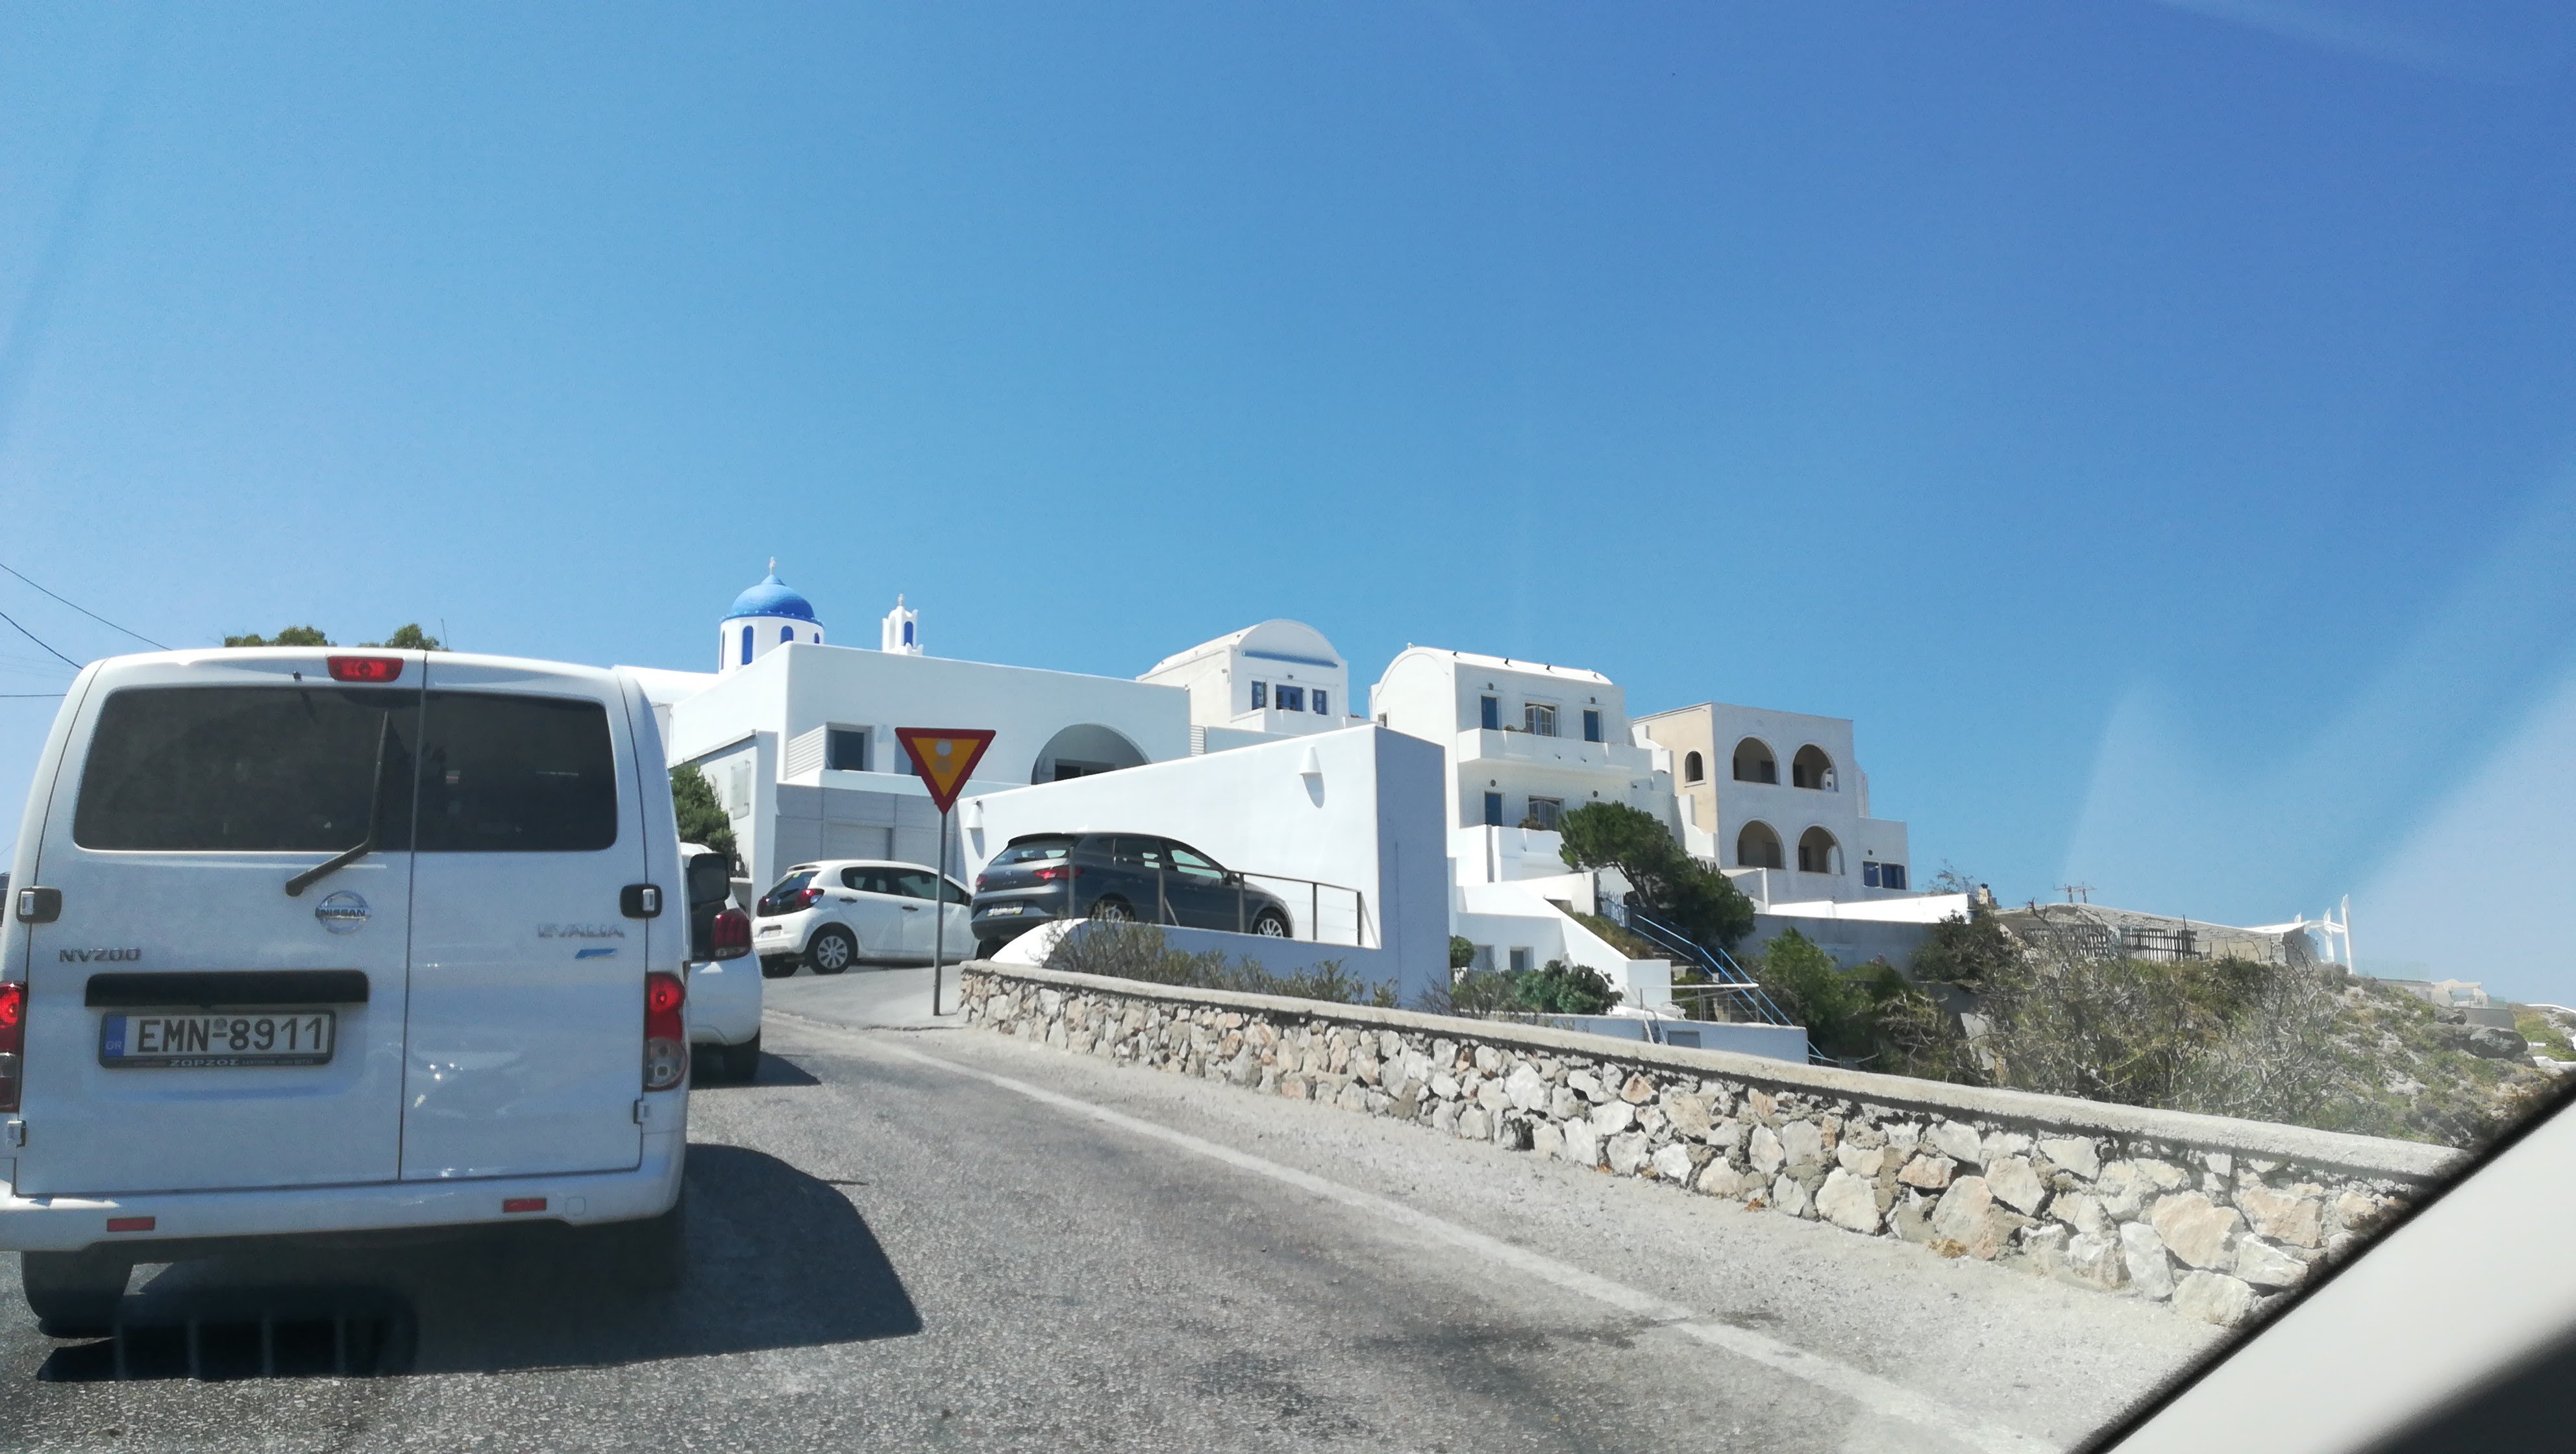 First white houses in sight